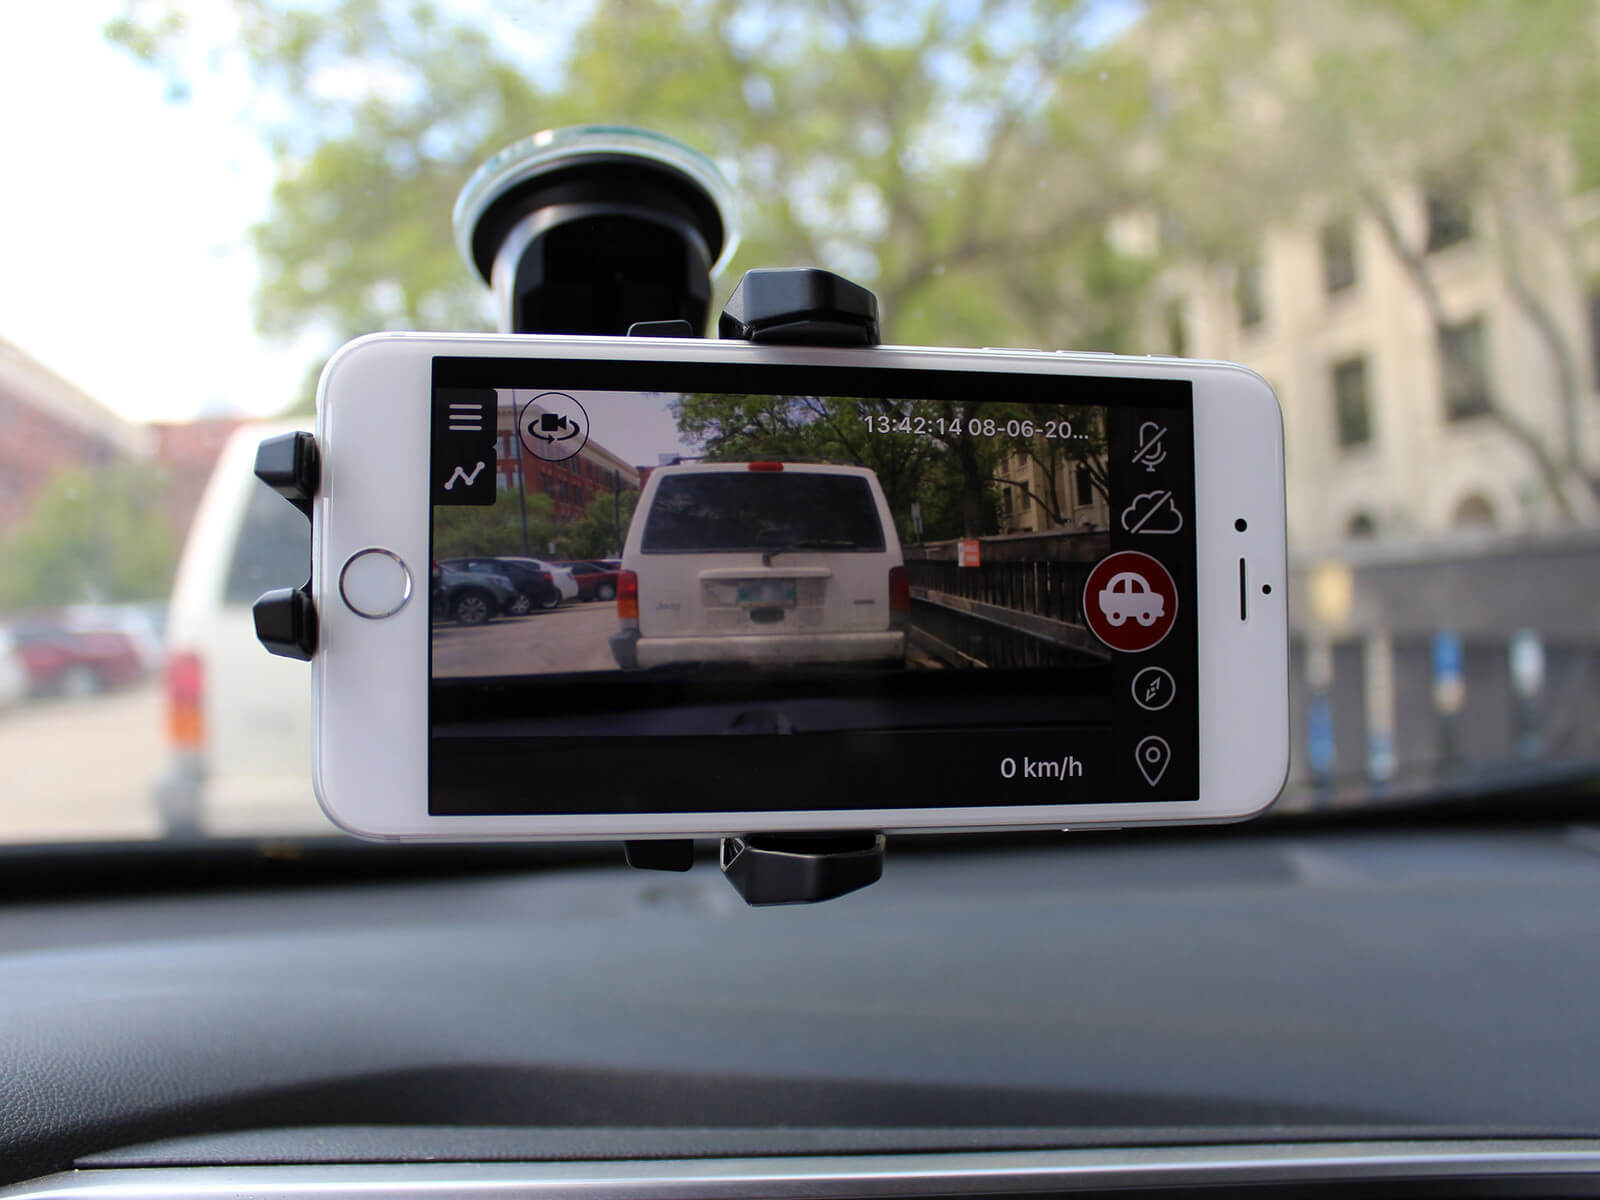 Uber Careem DashCam